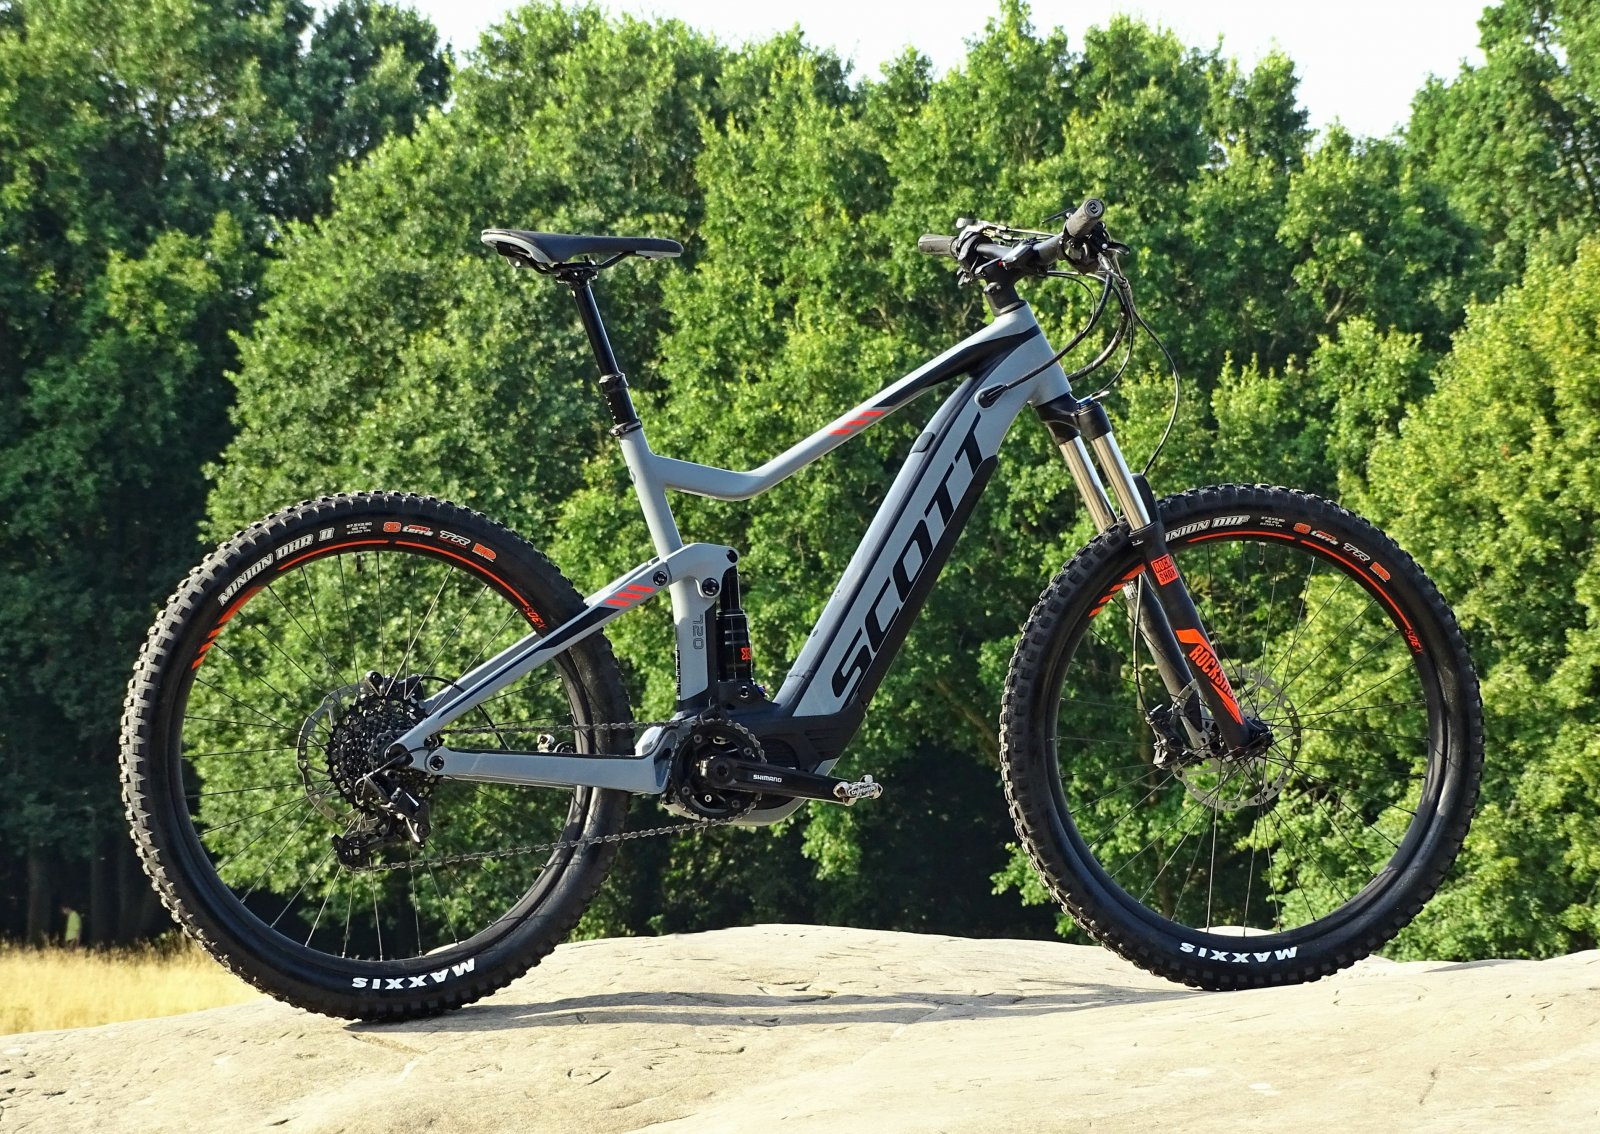 Scott launched the New E-Genius 2018 Electric MTB